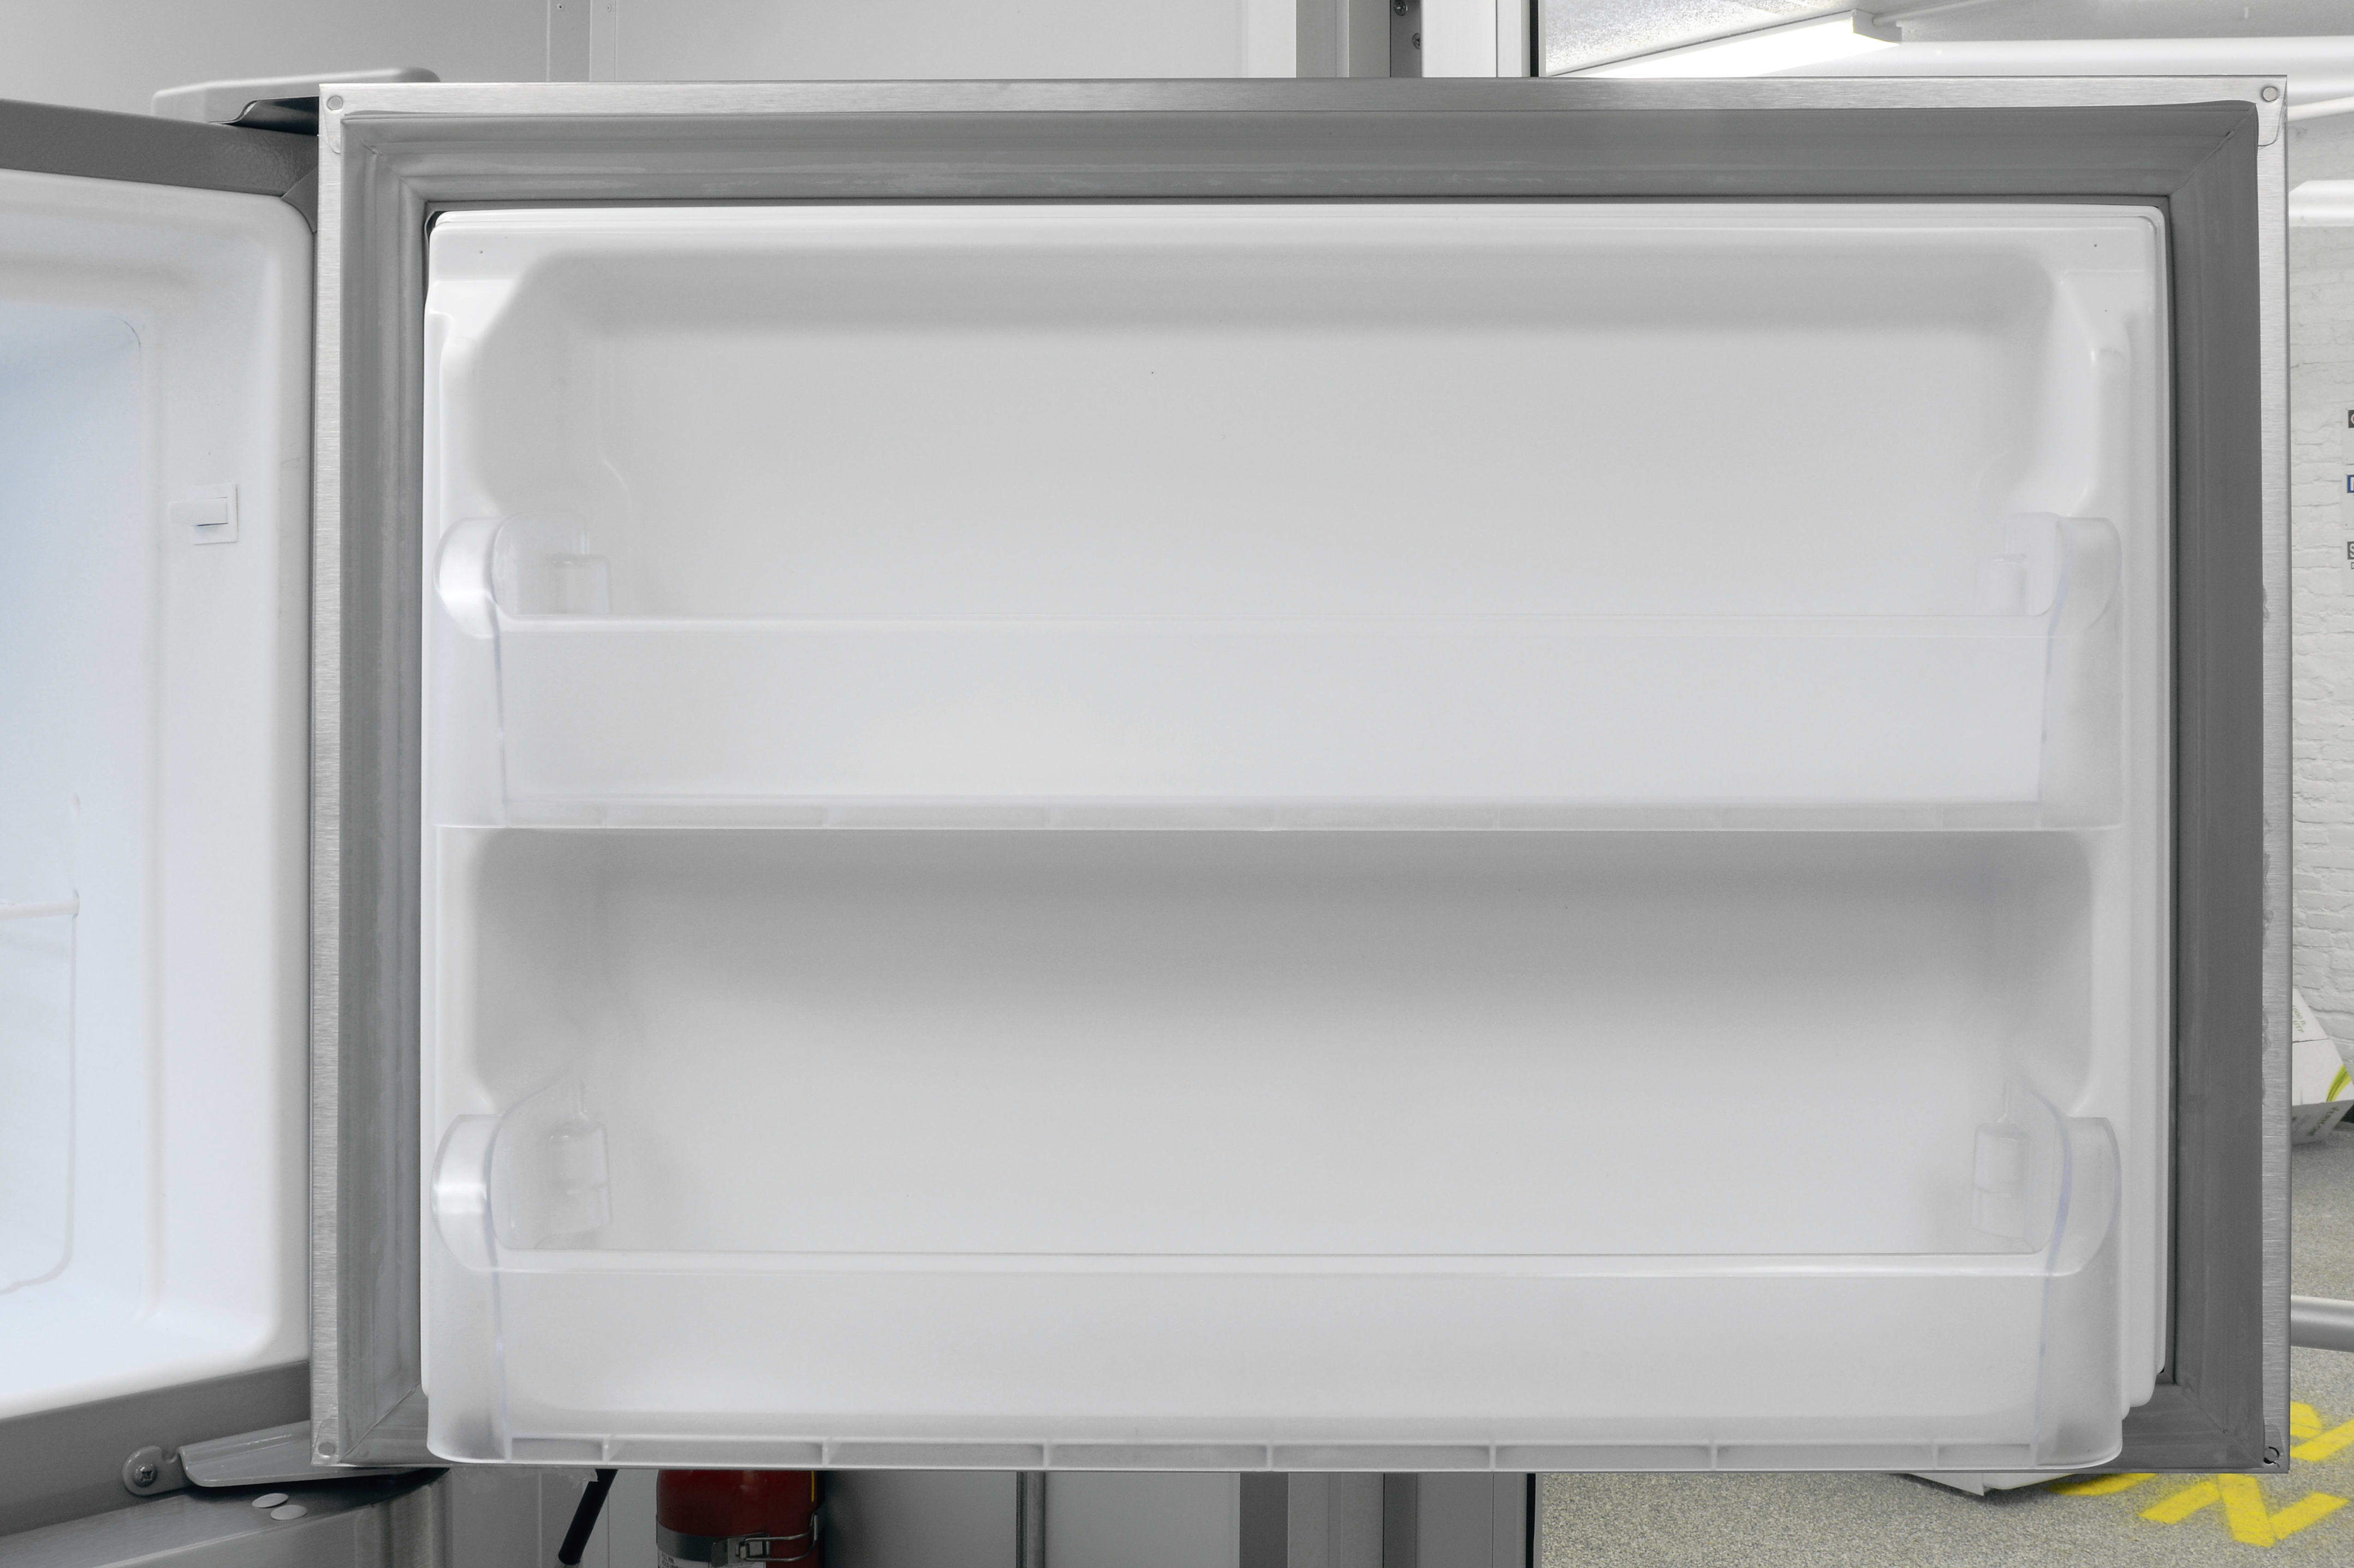 The Kenmore 70623's two matching door shelves offer extra freezer space.